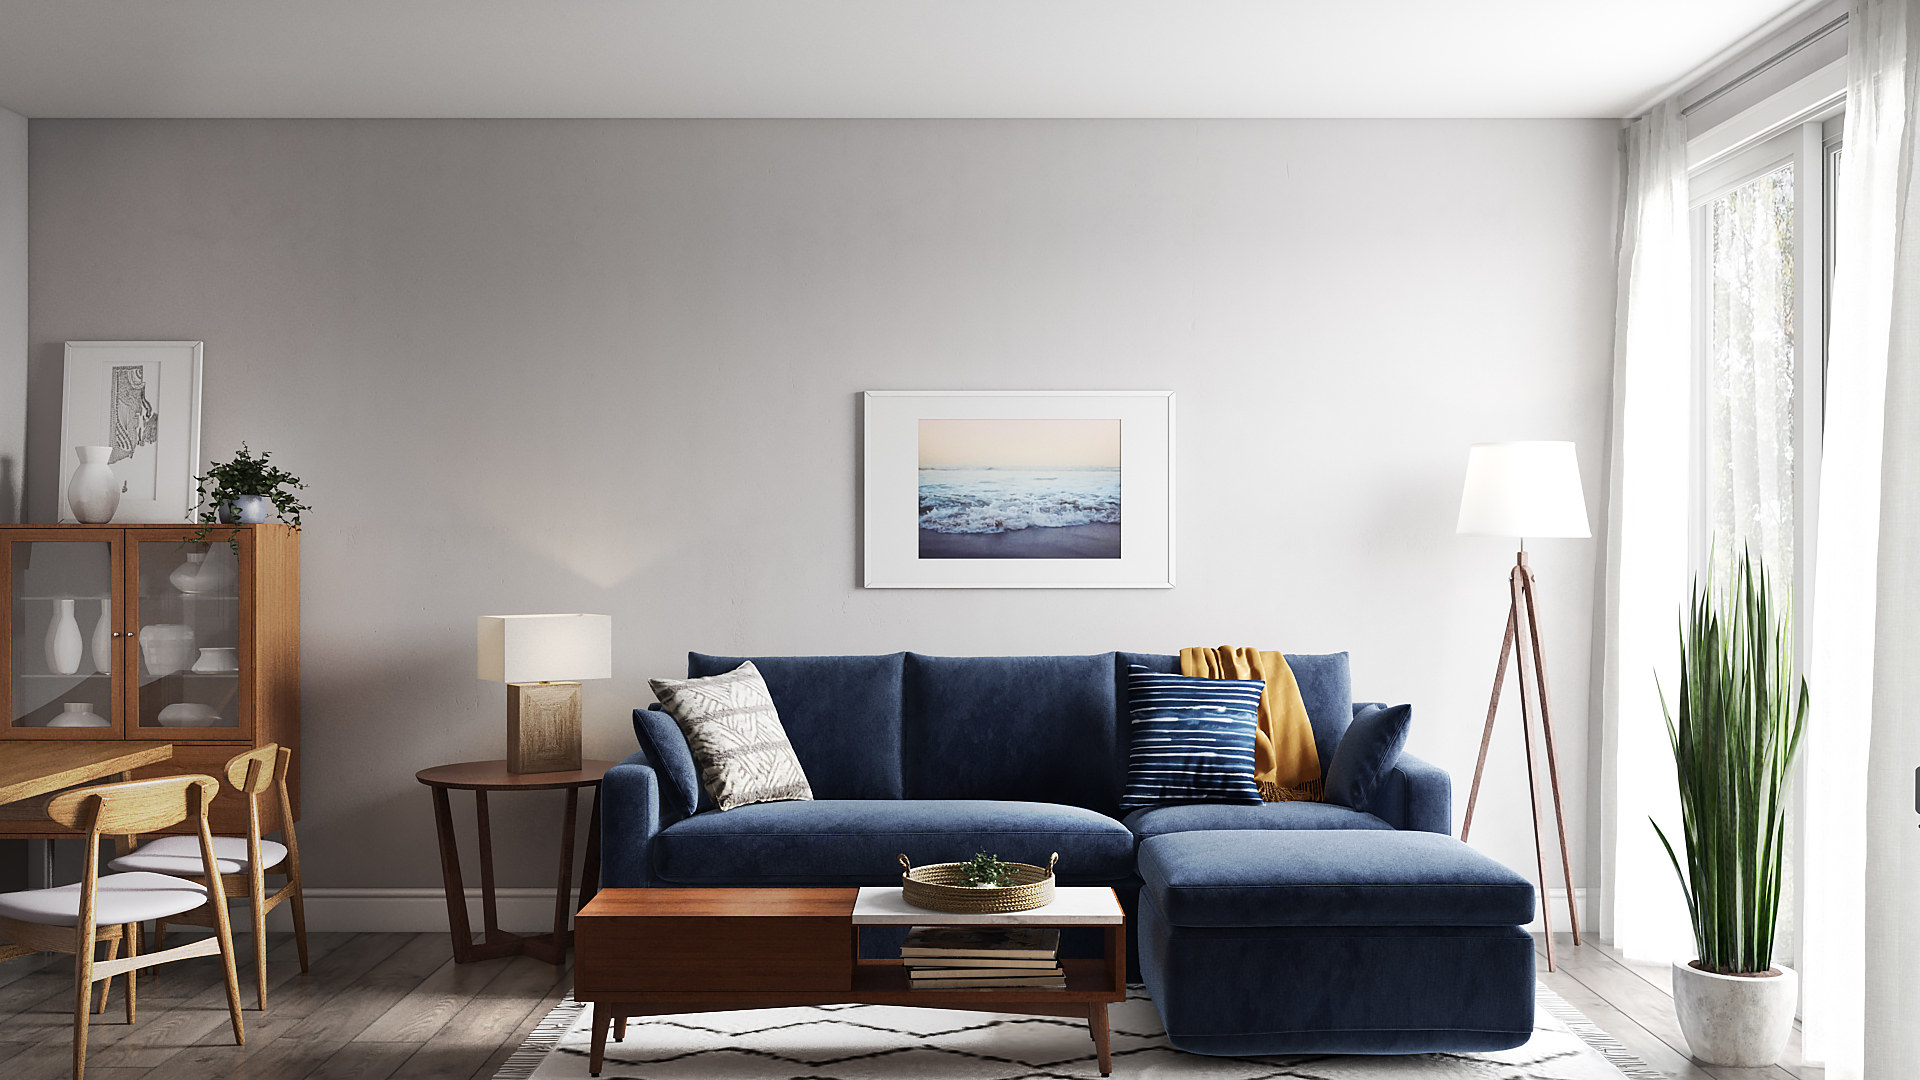 Photorealistic 3D rendering of my completed living room.